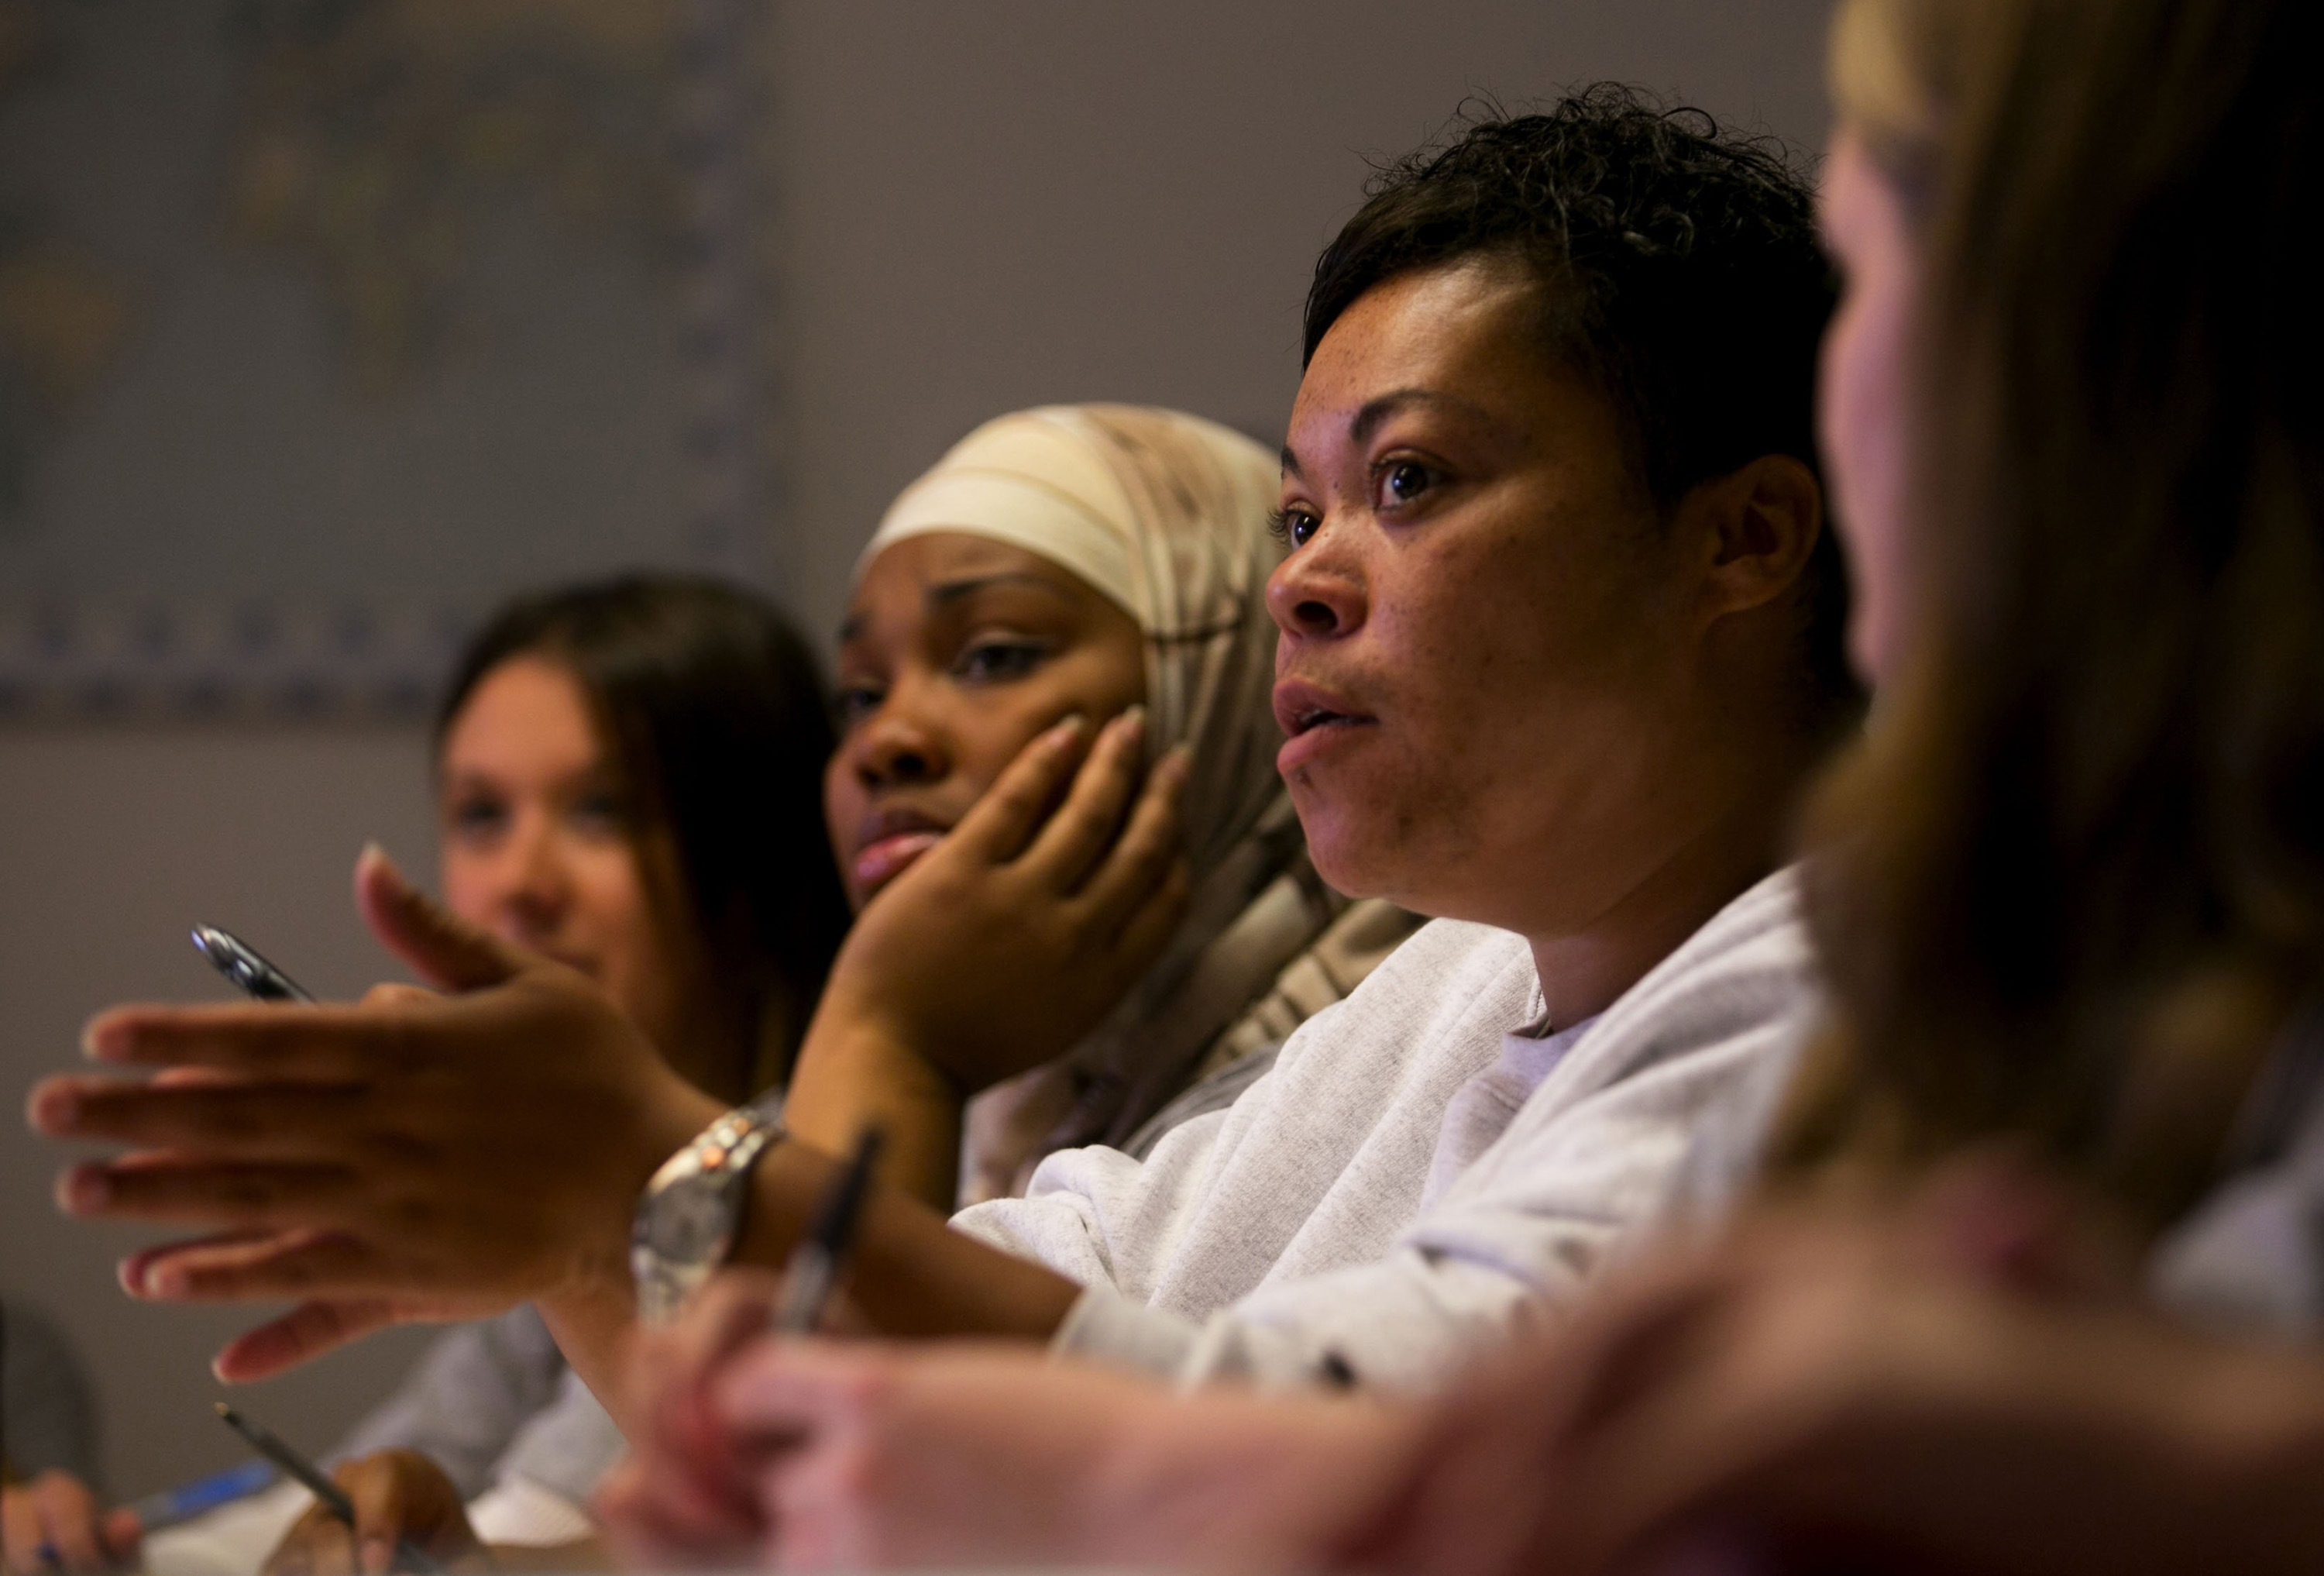 Lisa Kanamu, second from right, joins a discussion during a government class at the Washington Corrections Center for Women. A 2013 study found that prisoners enrolled in education programs were 43 percent less likely to return to prison within three years of release.